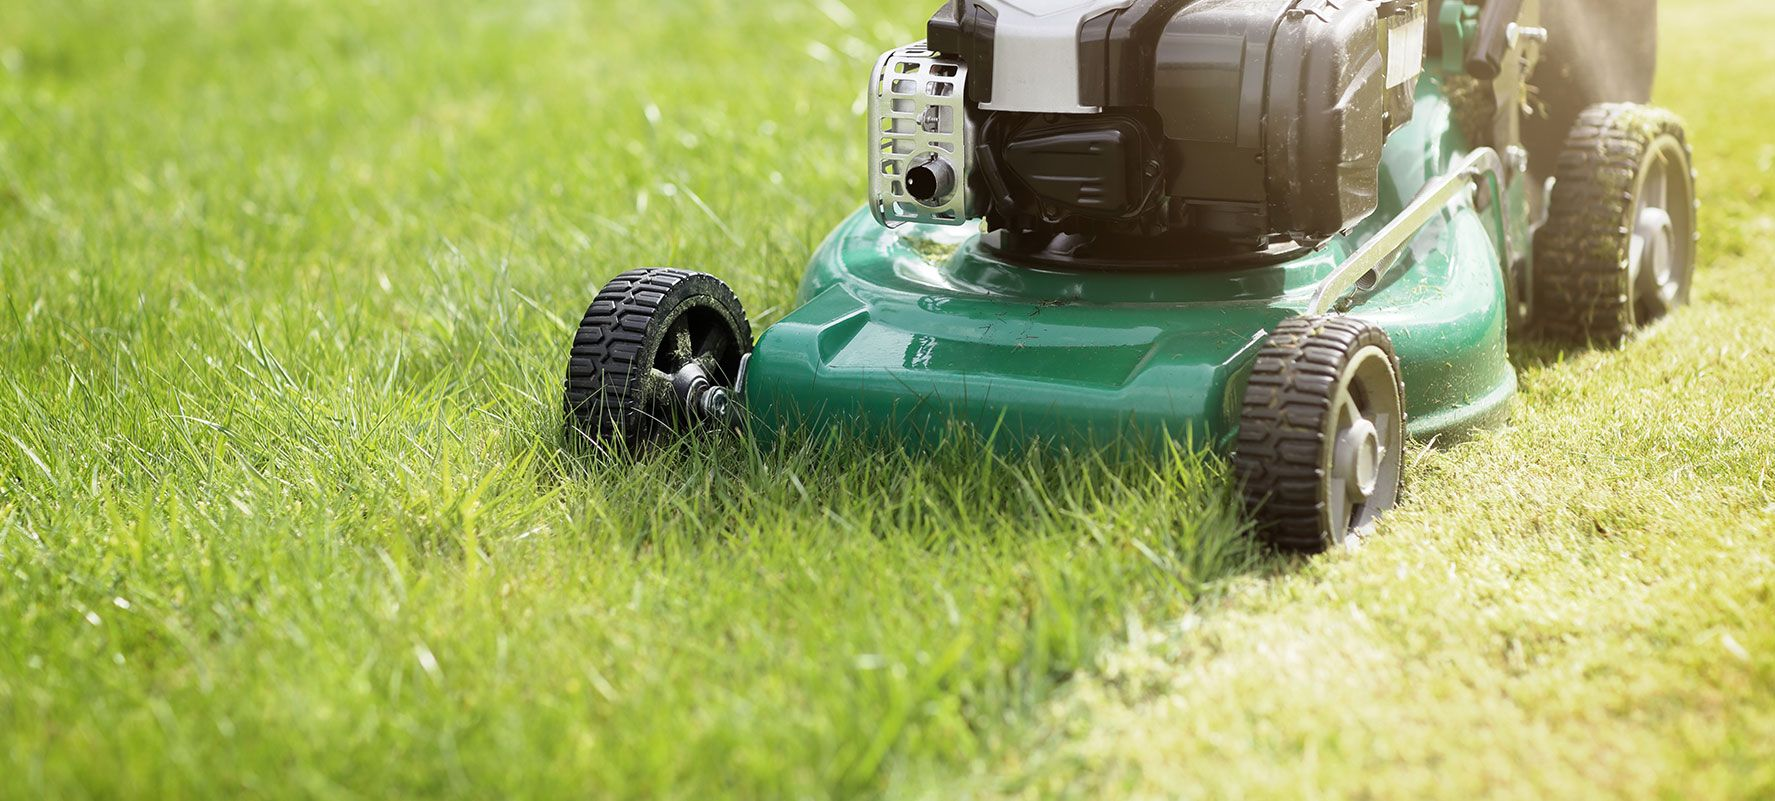 Build Your Dream Yard In Aurora (With images) Lawn care